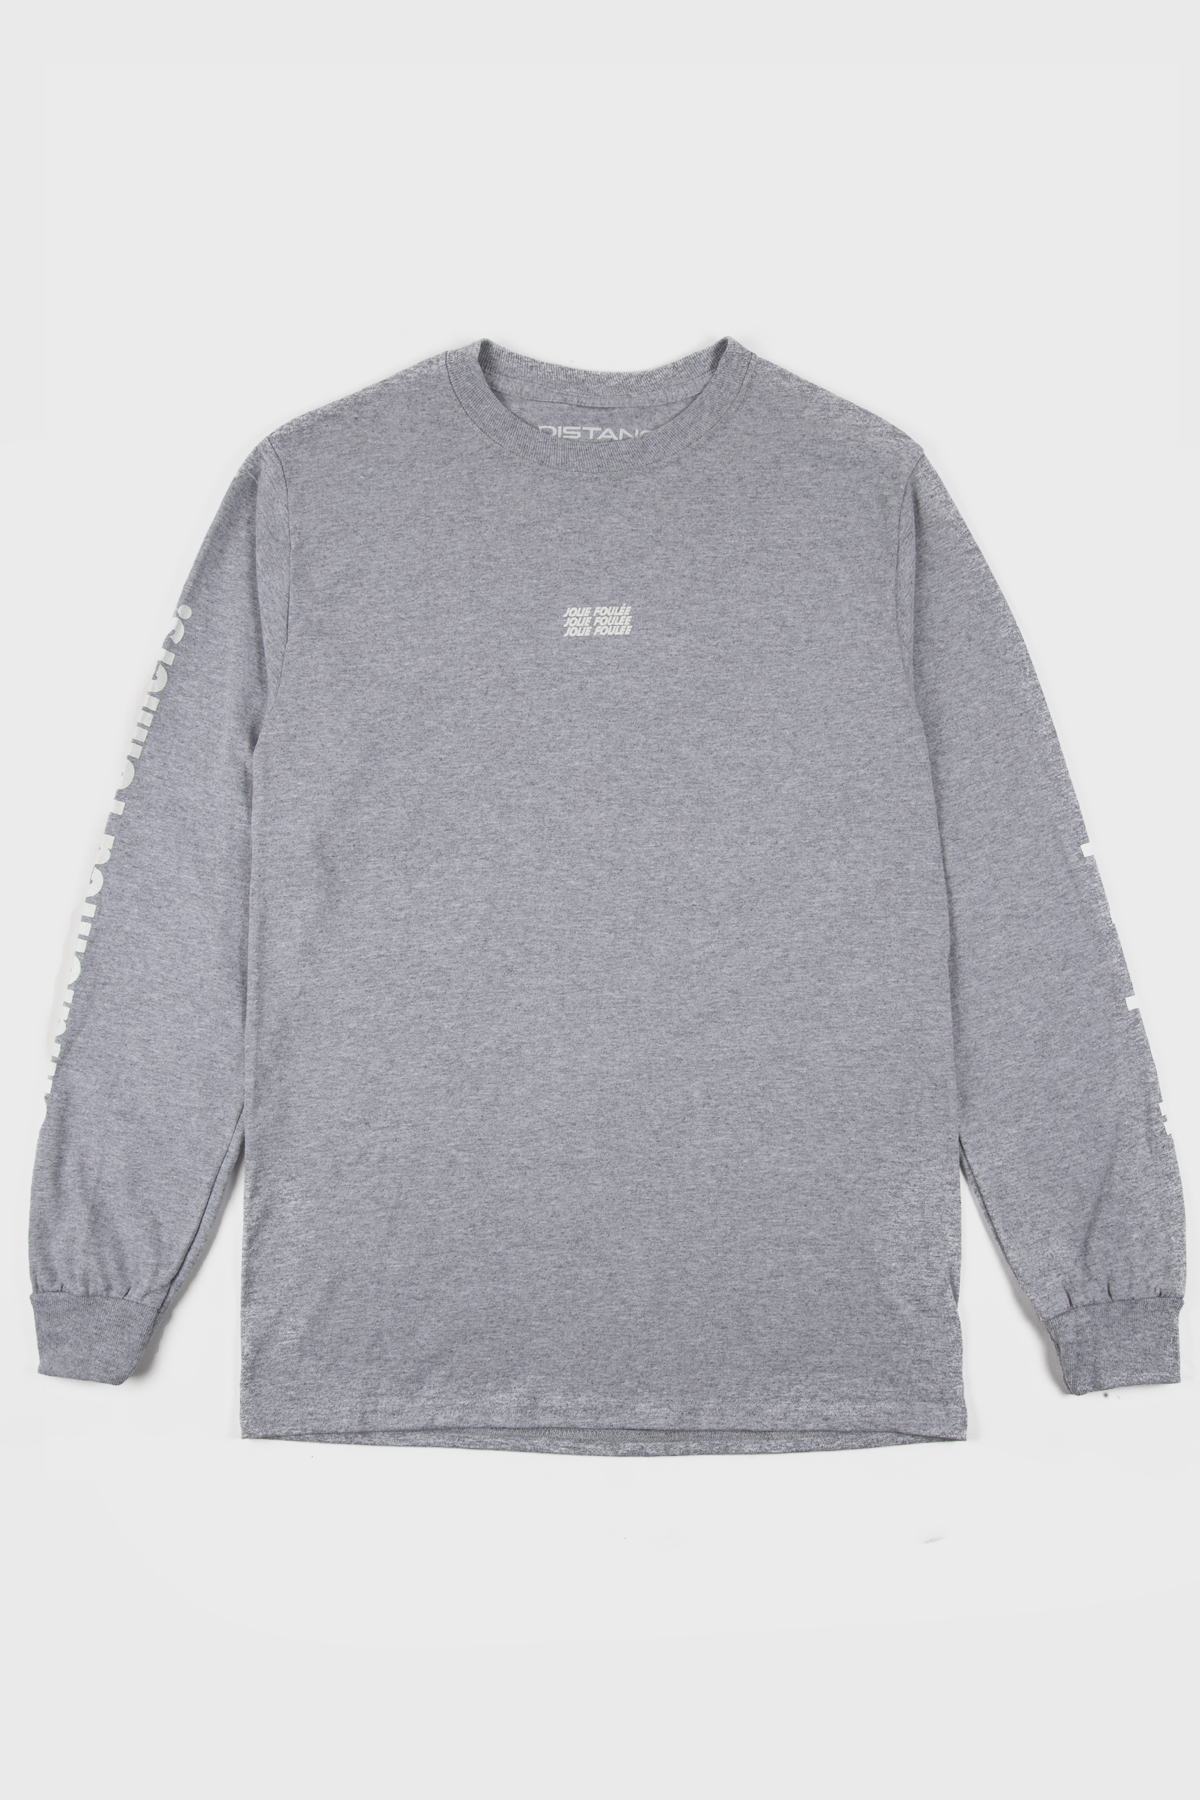 Jolie Foulée - Untalented Runners Long sleeve - Grey White